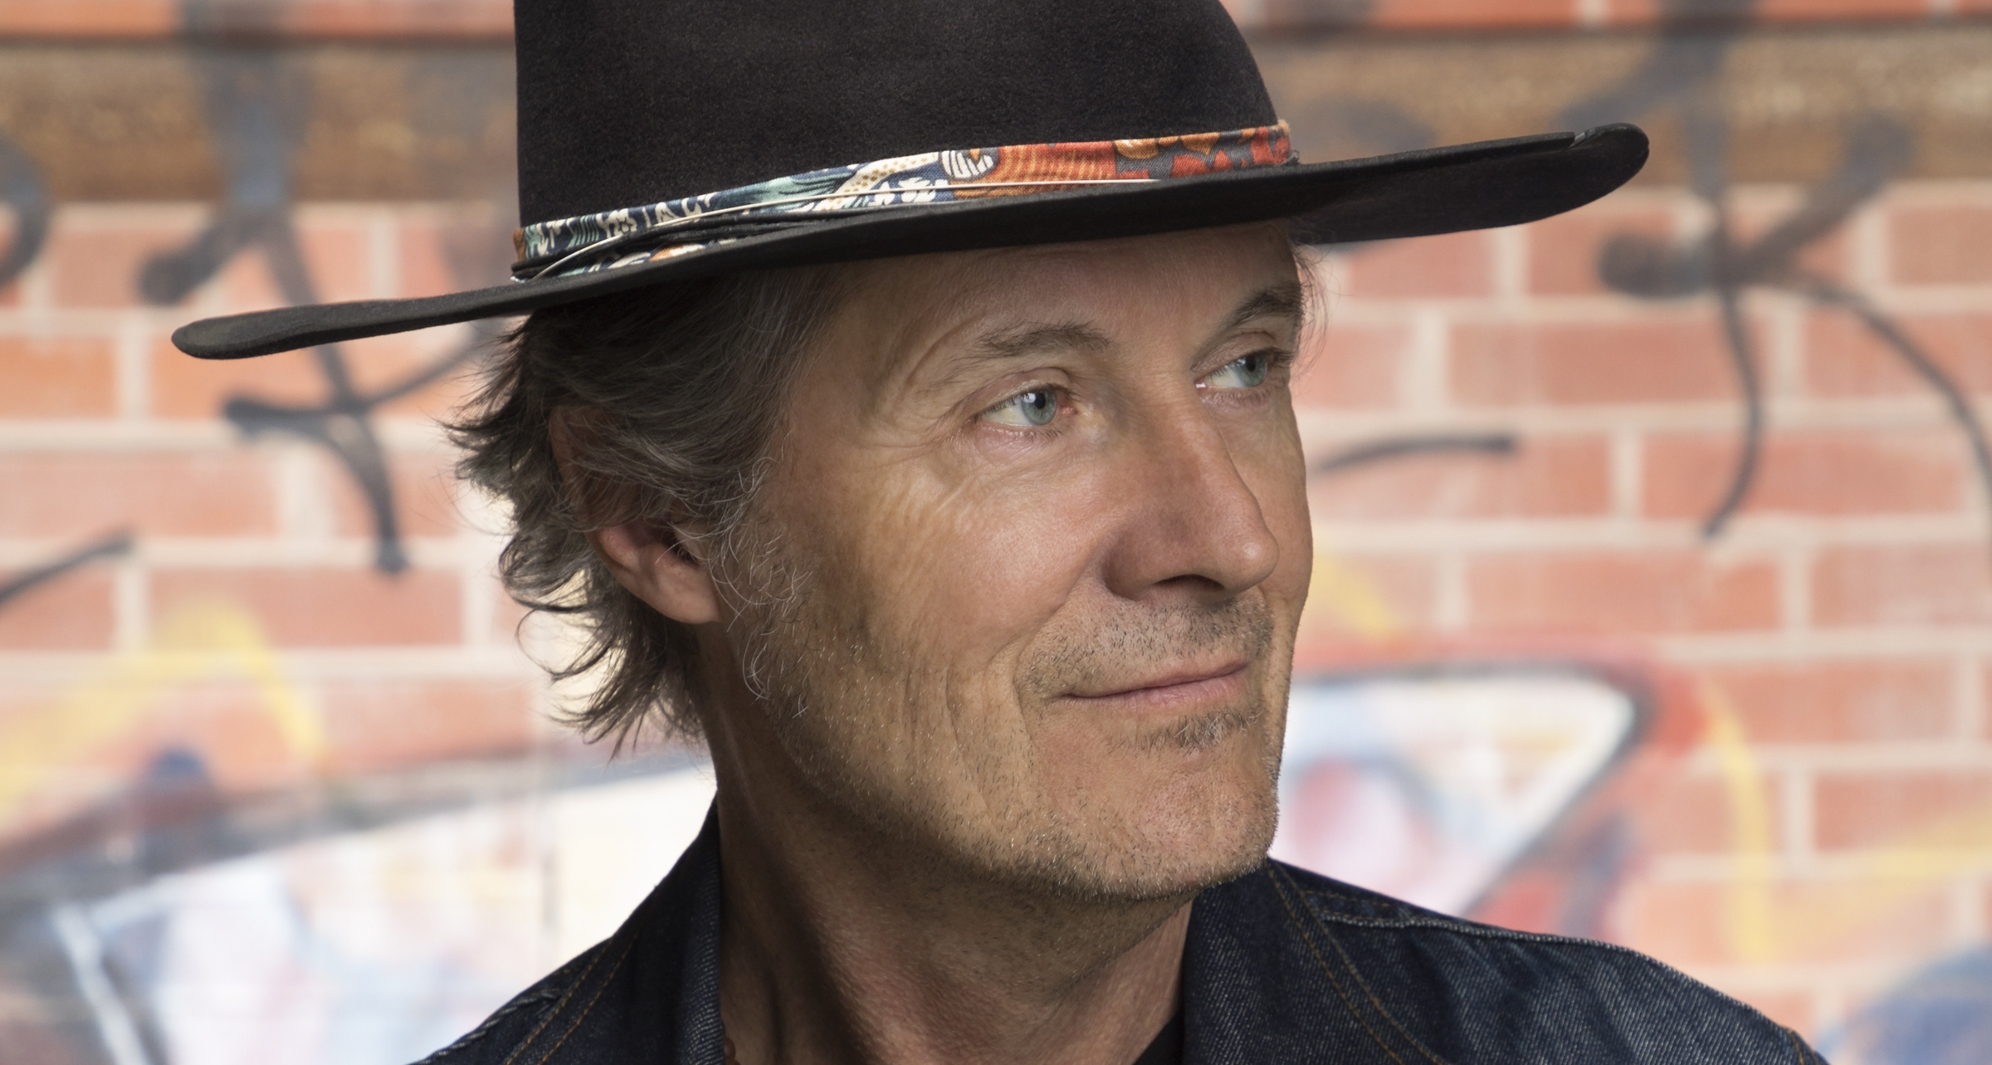 Albumism_JimCuddy_MainImage1.jpg